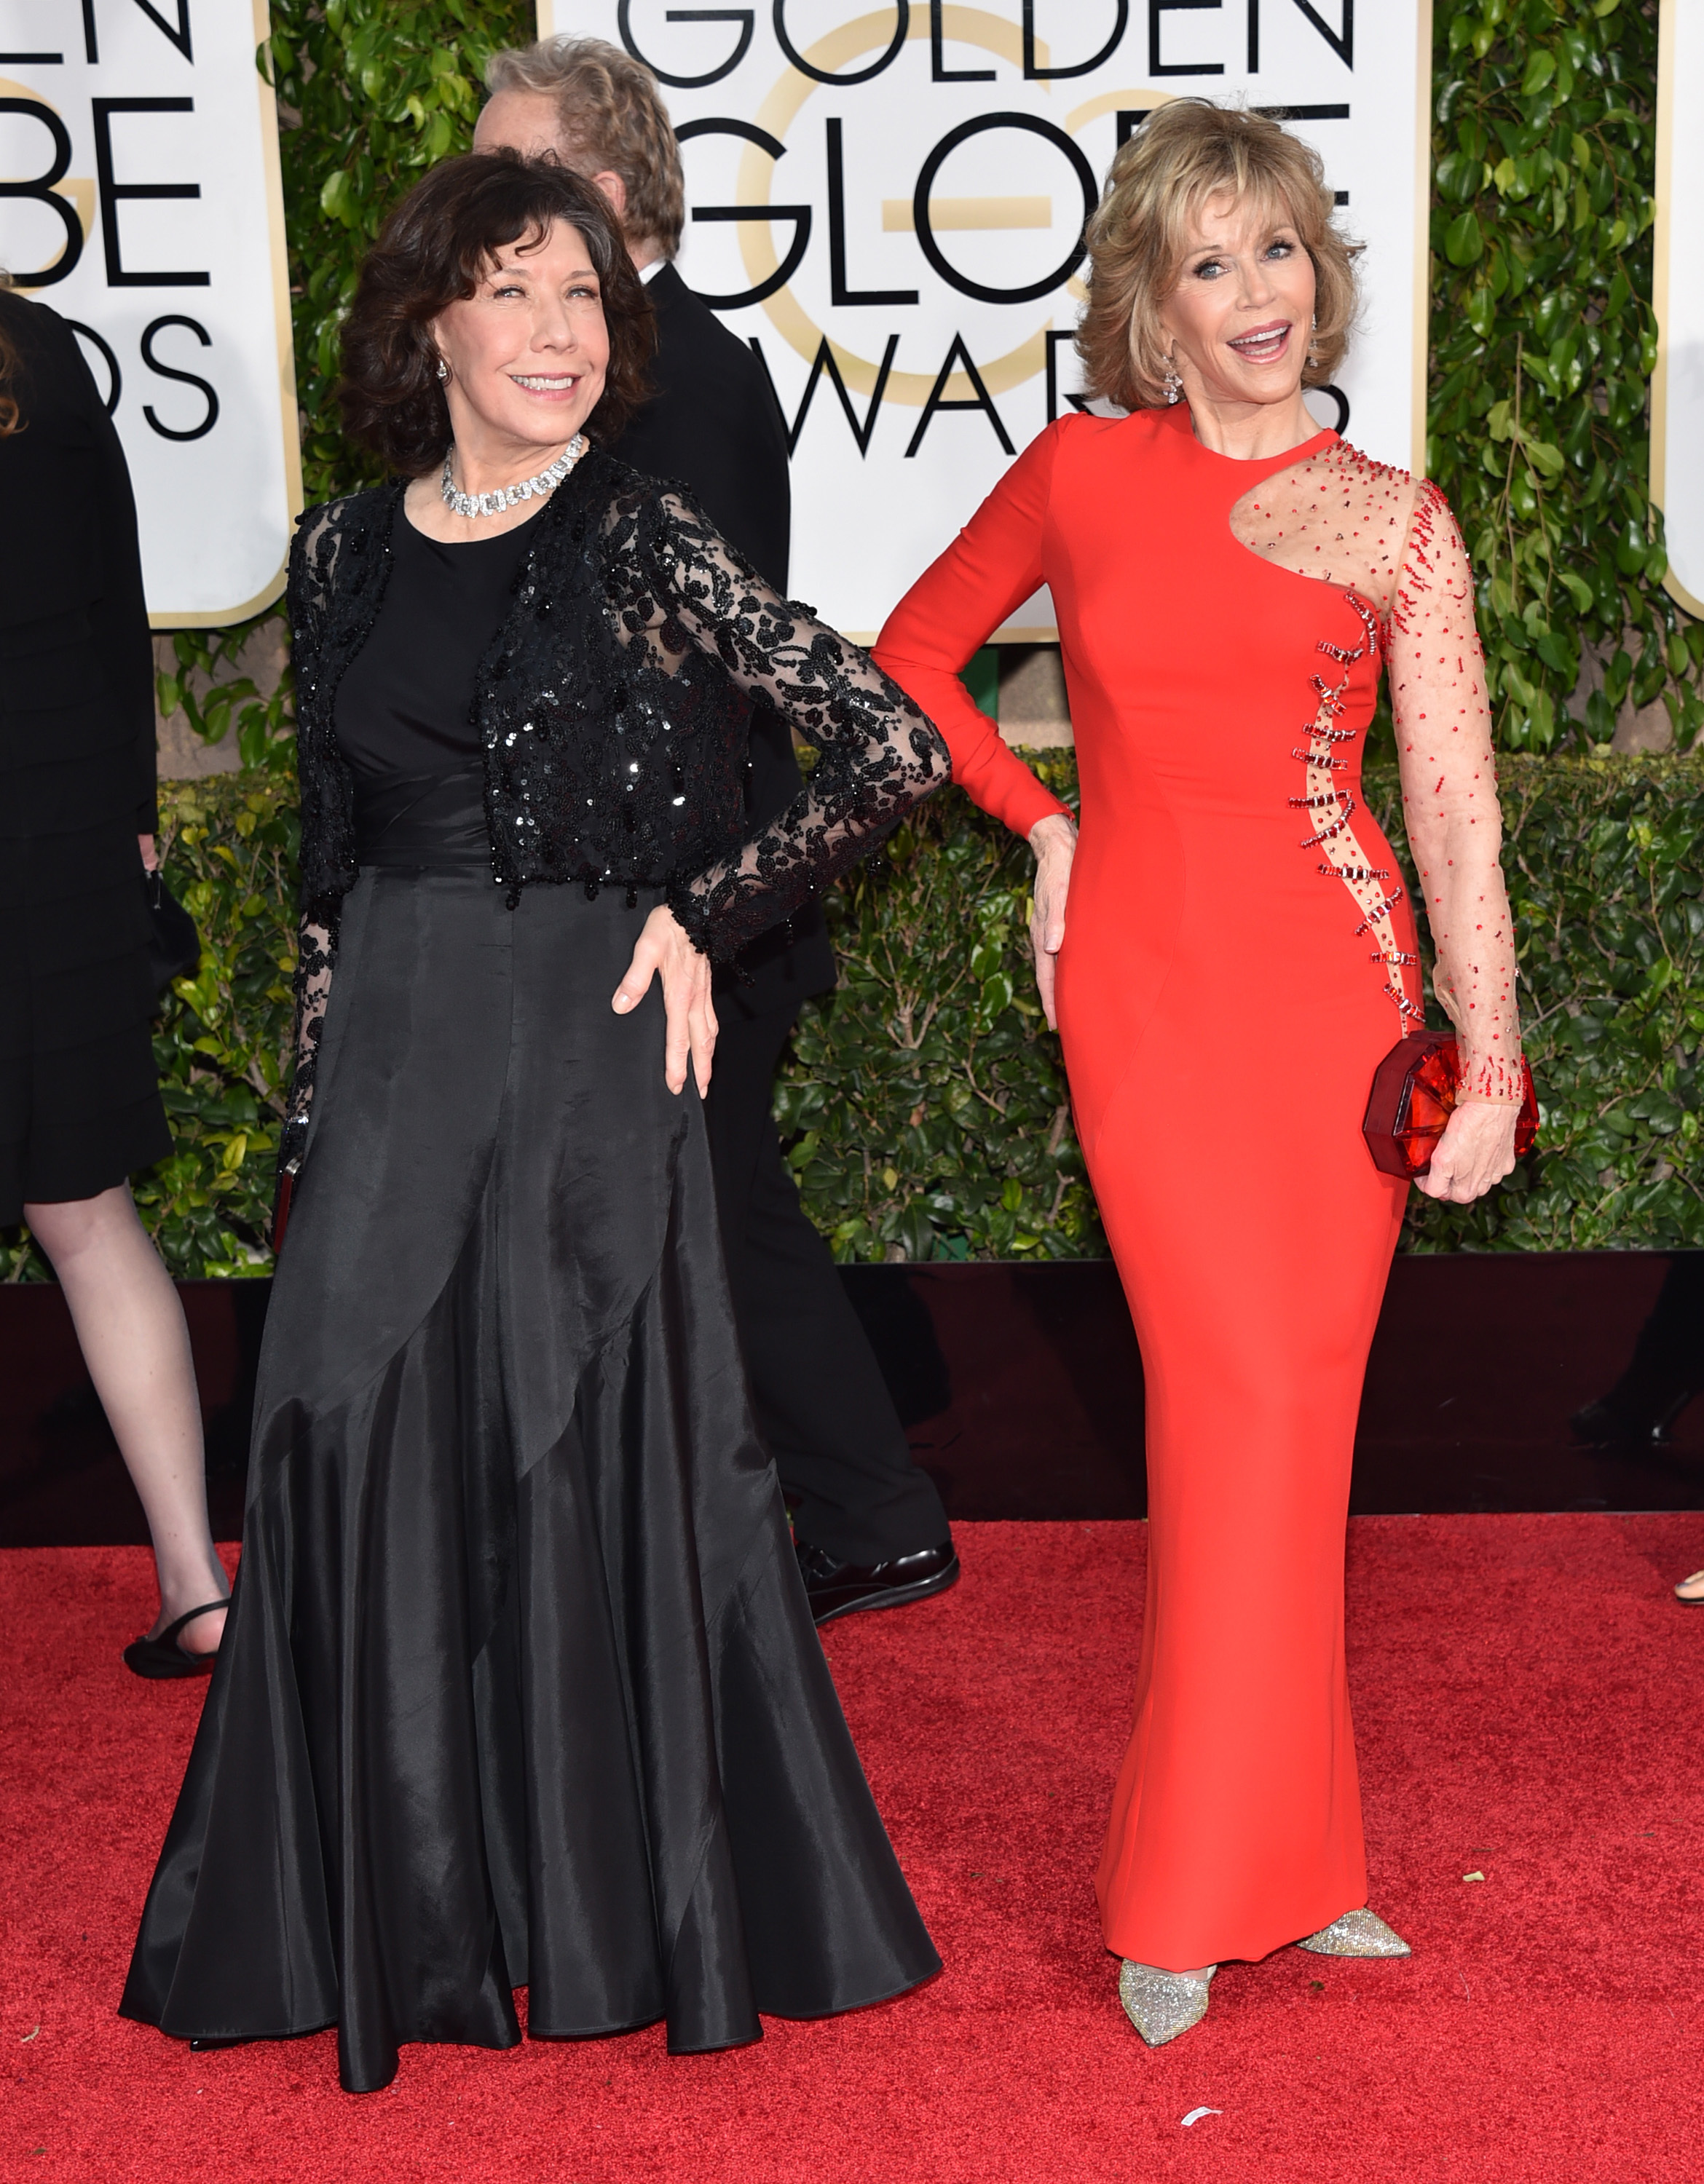 Lily Tomlin, Jane Fonda crack jokes about men in comedy